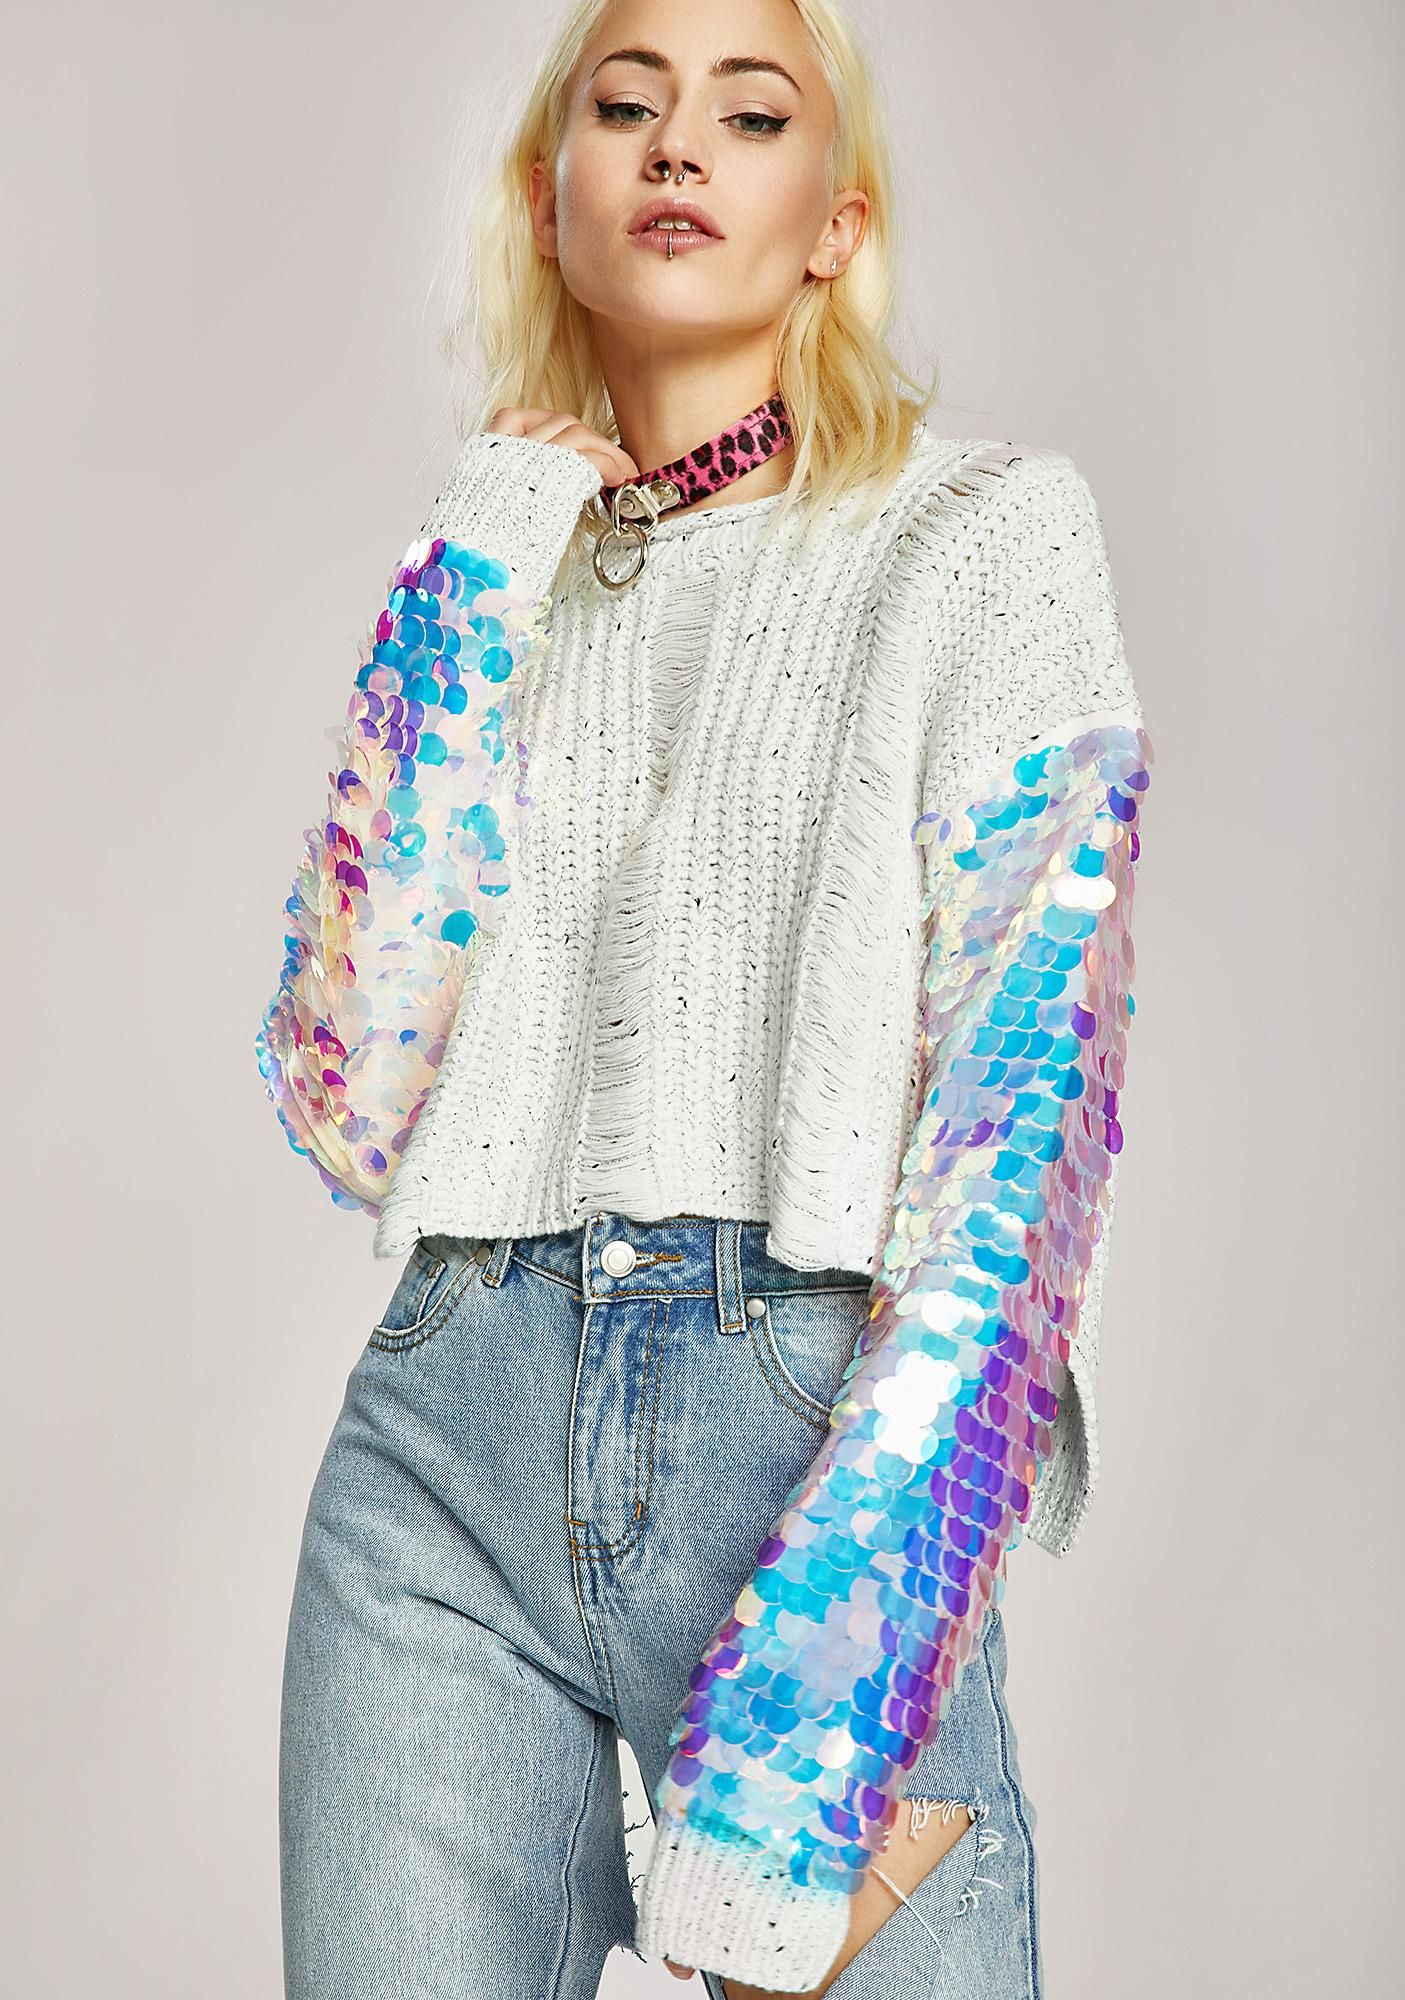 Small Victories Sequin Sweater